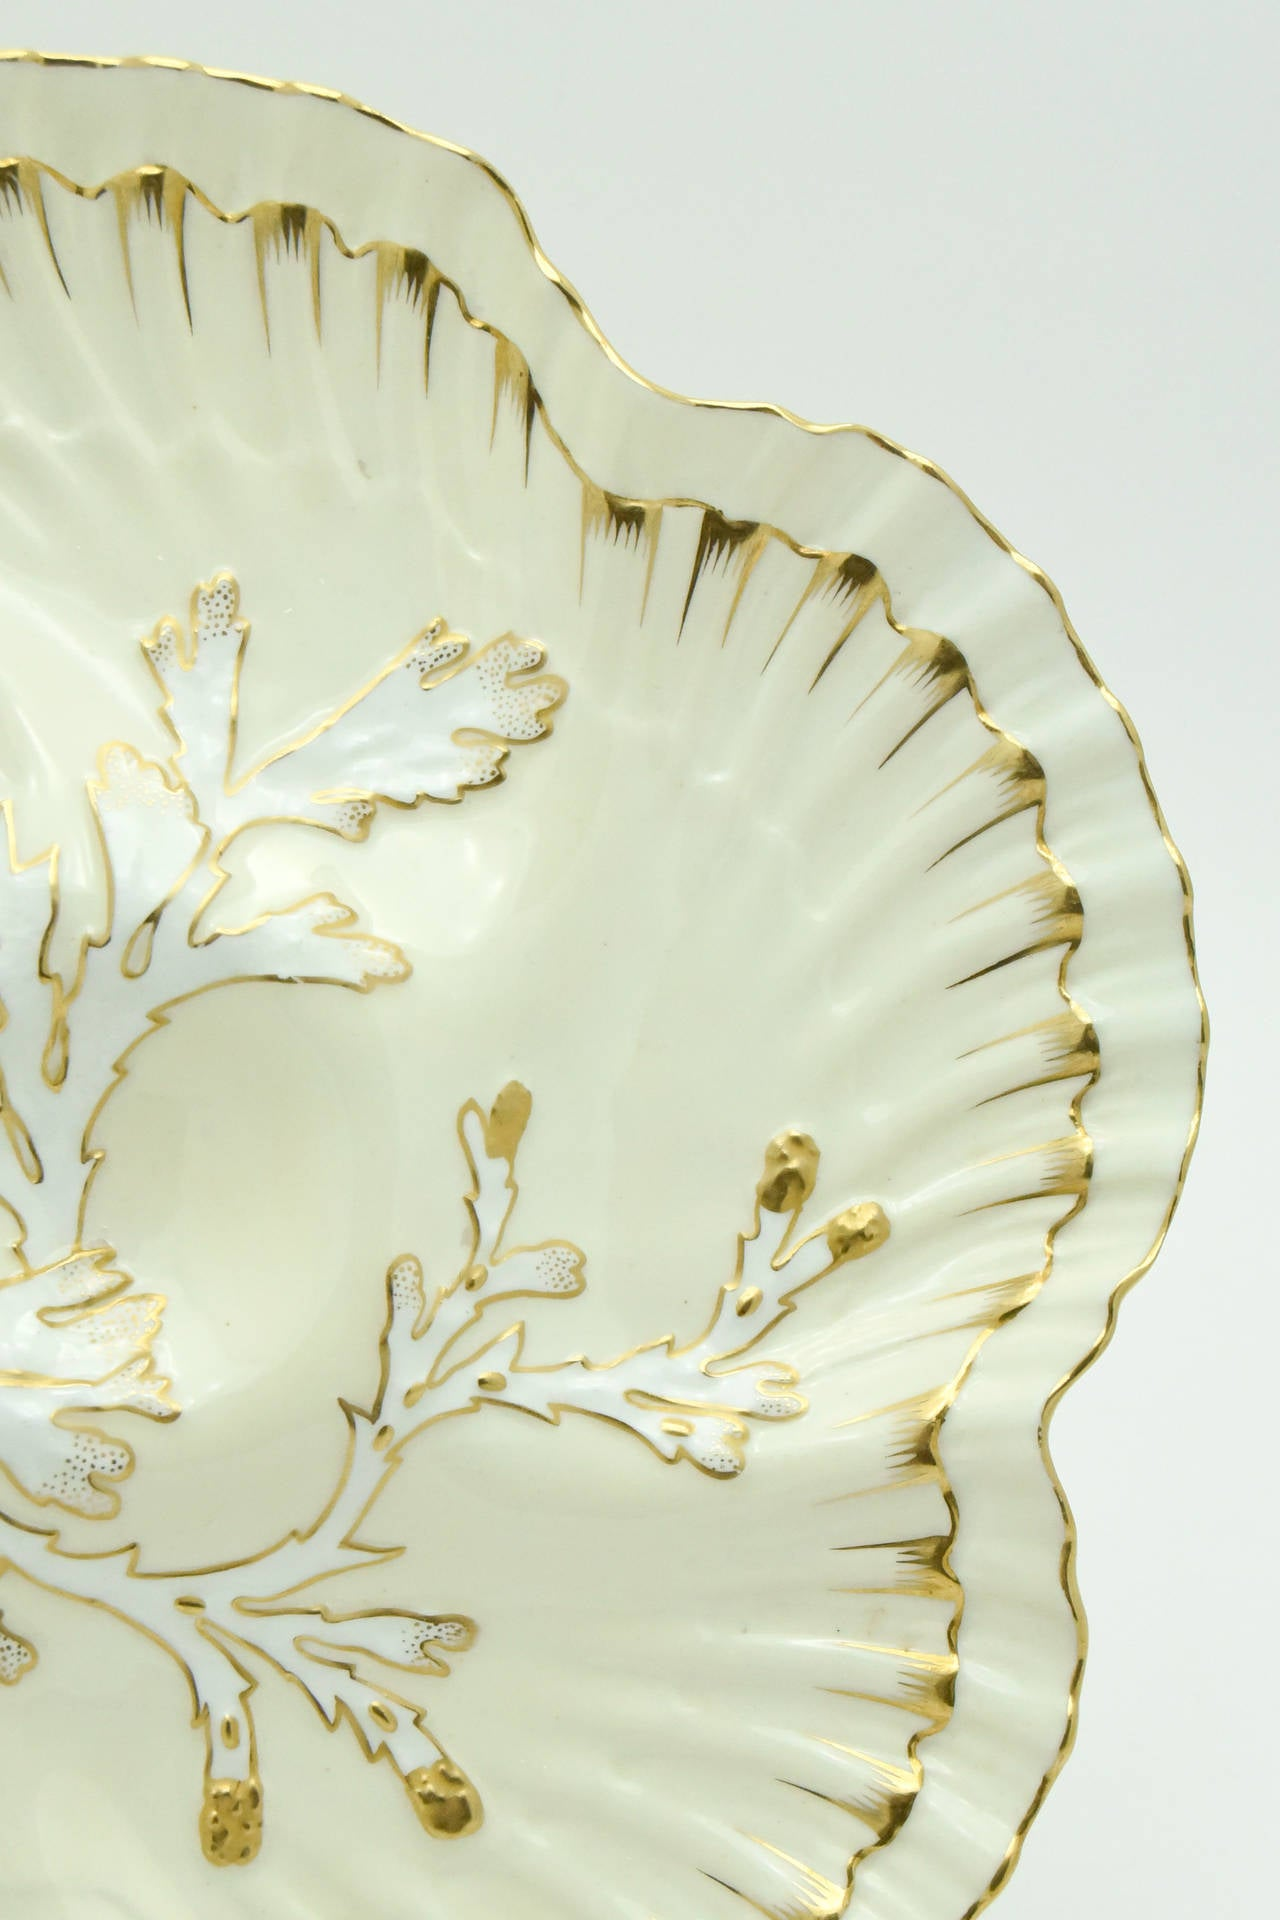 Set of 12 19th c. Brownfield's for Tiffany Ivory & Gold Coral Reef Oyster Plates In Excellent Condition For Sale In Great Barrington, MA